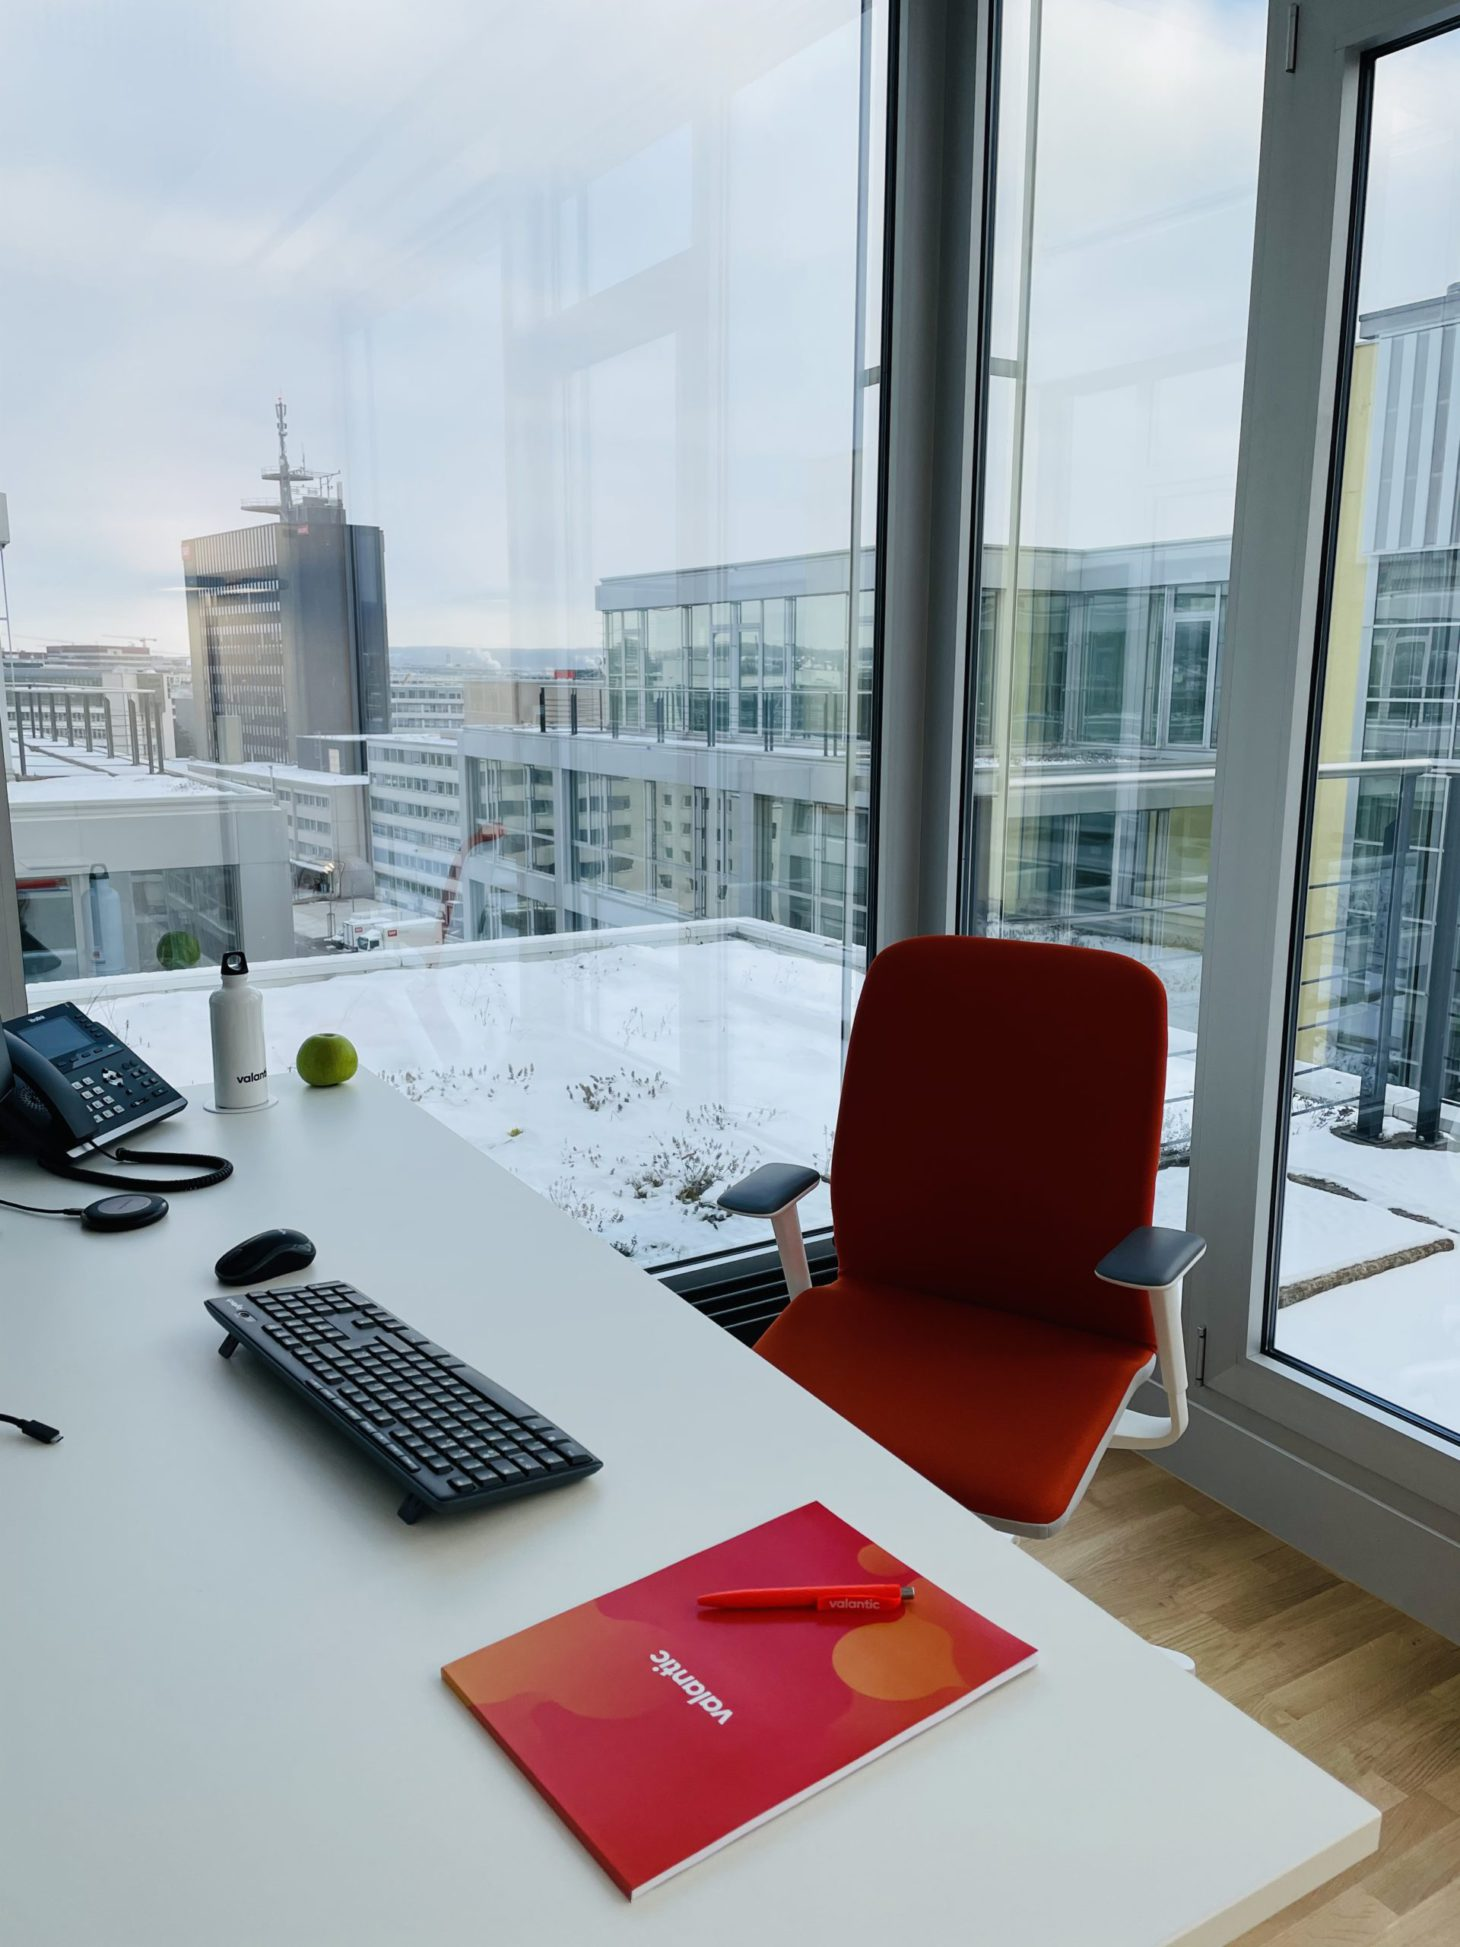 Image of an office desk of the valantic Zurich branch with a window view